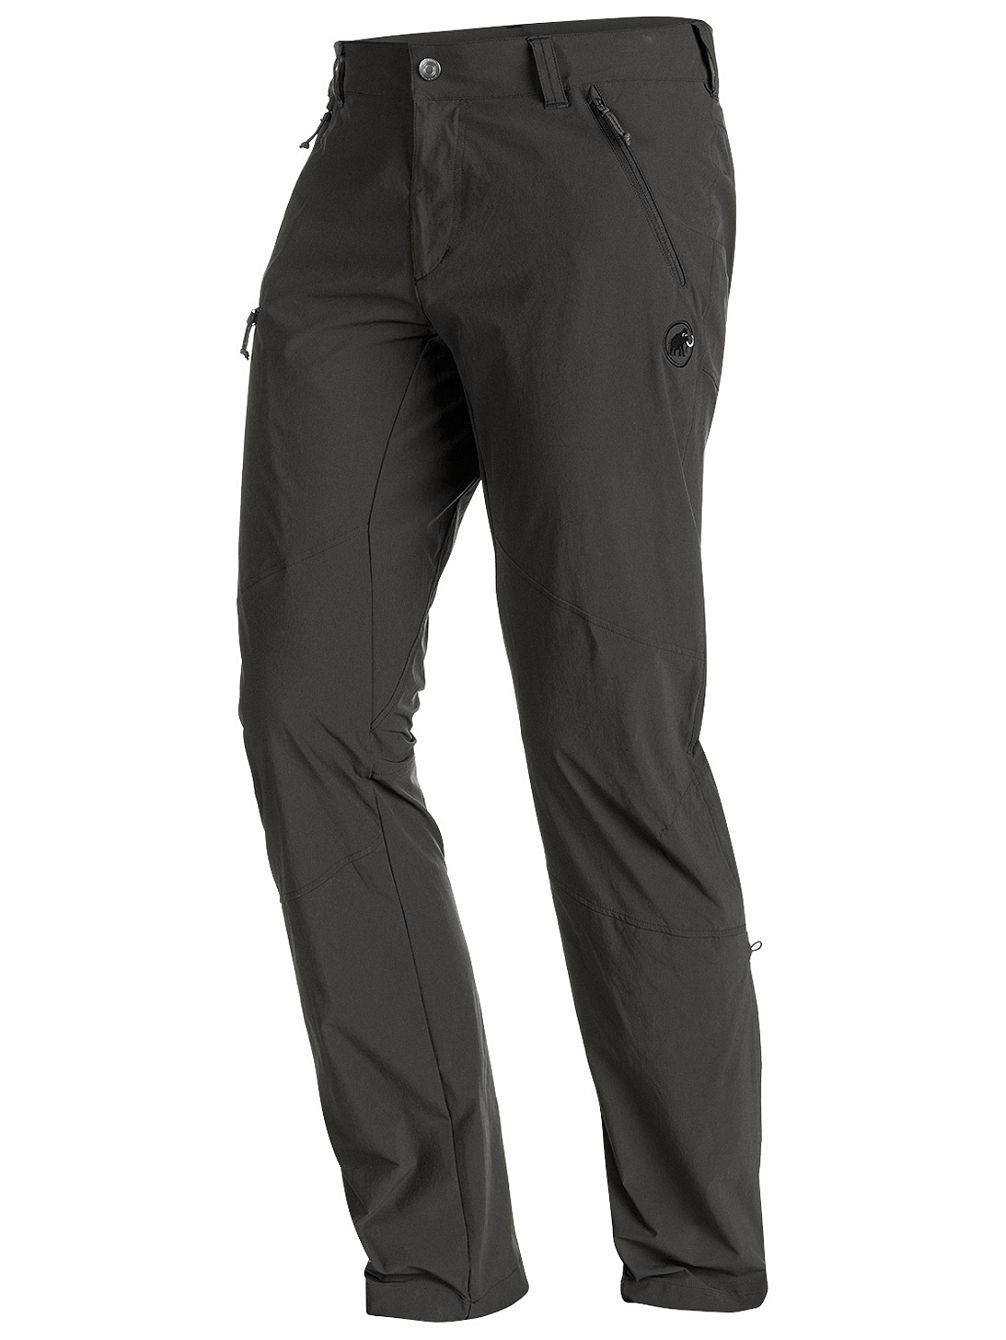 Runbold Outdoor Pants